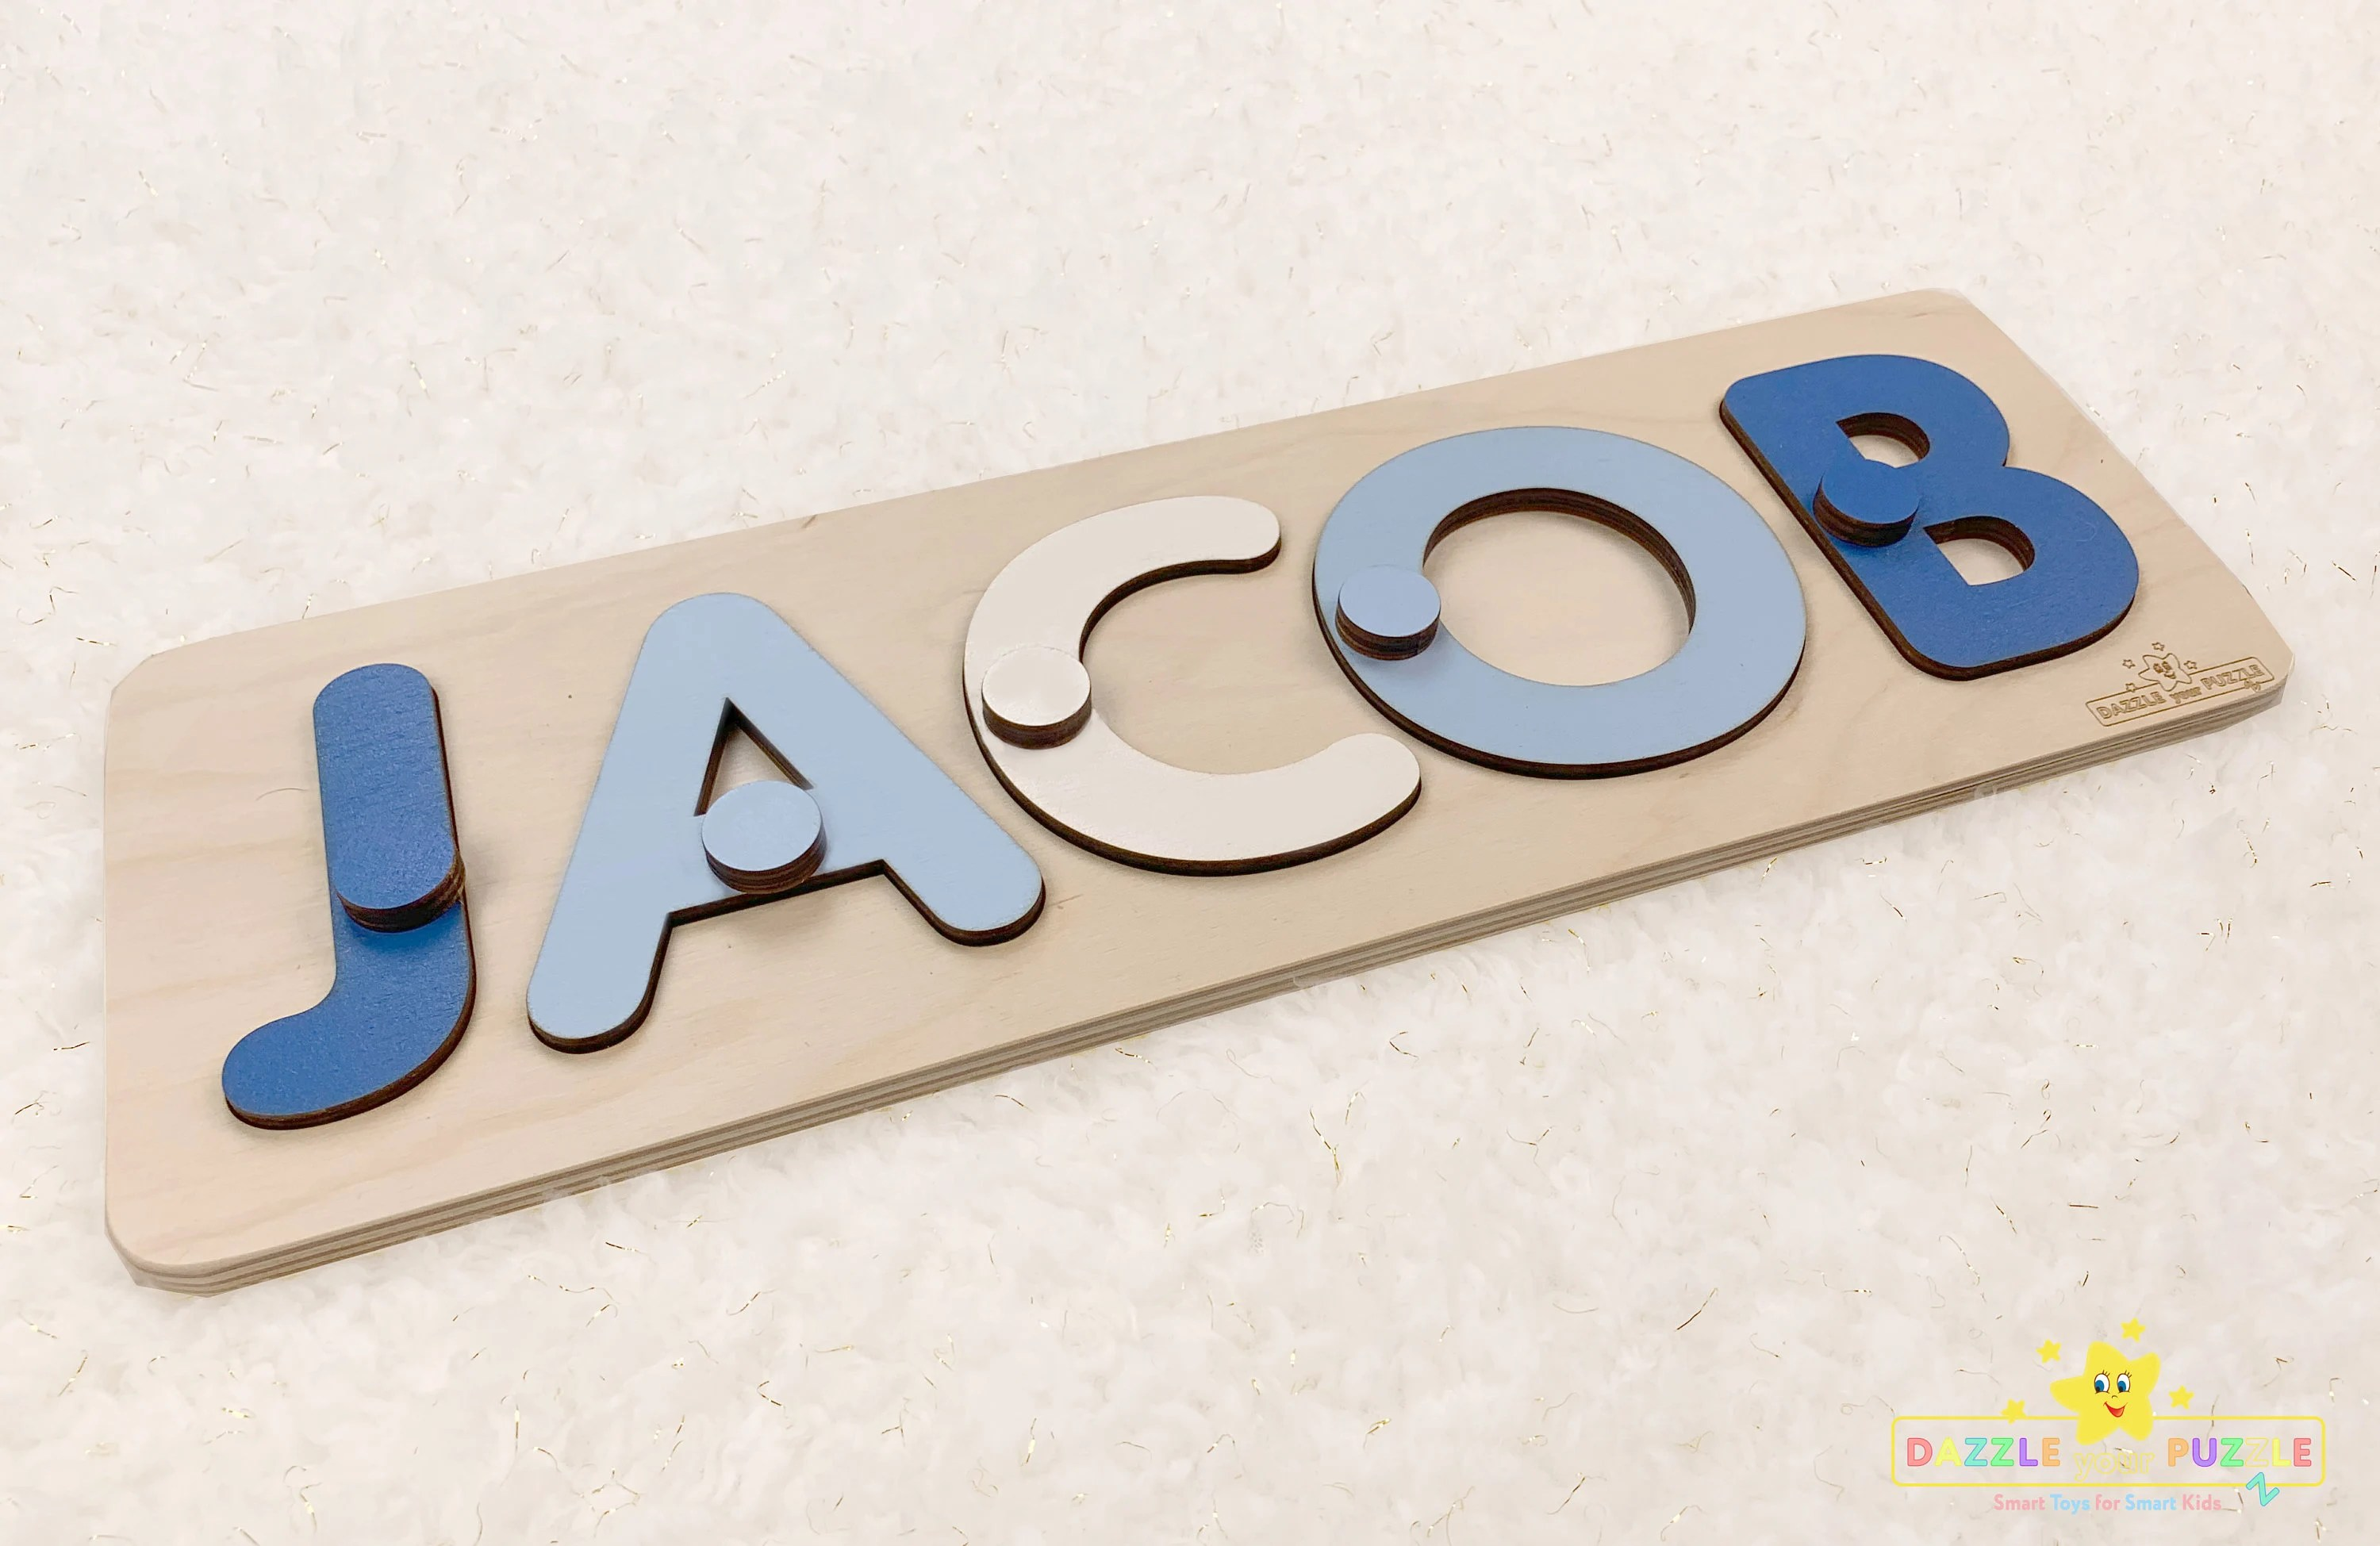 JACOB  Personalized Name Puzzle With Pegs  Montessori Toys image 1